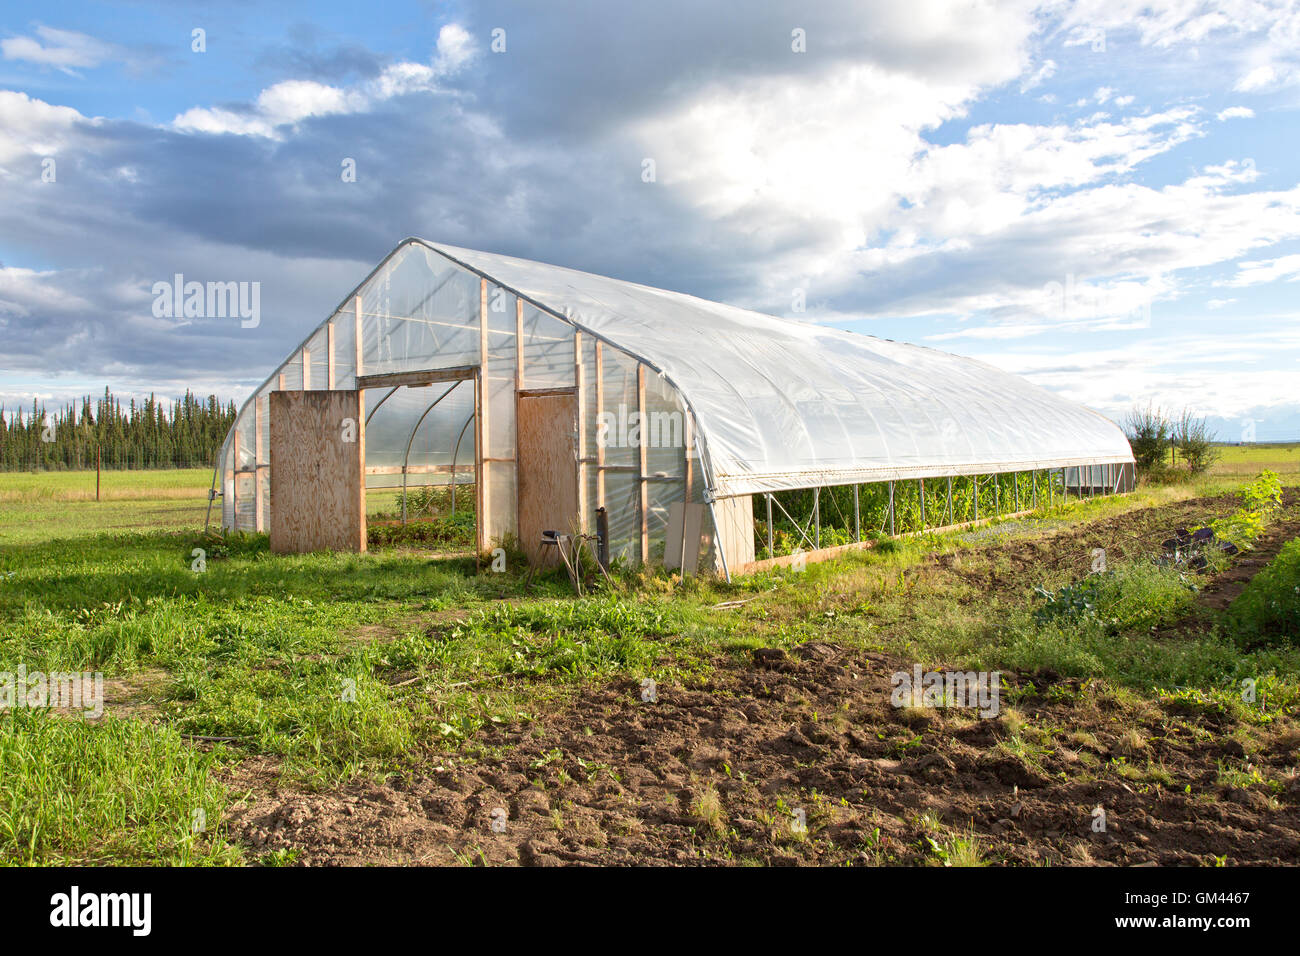 Tunnel, growing corn 'Zea mays' family farming. - Stock Image